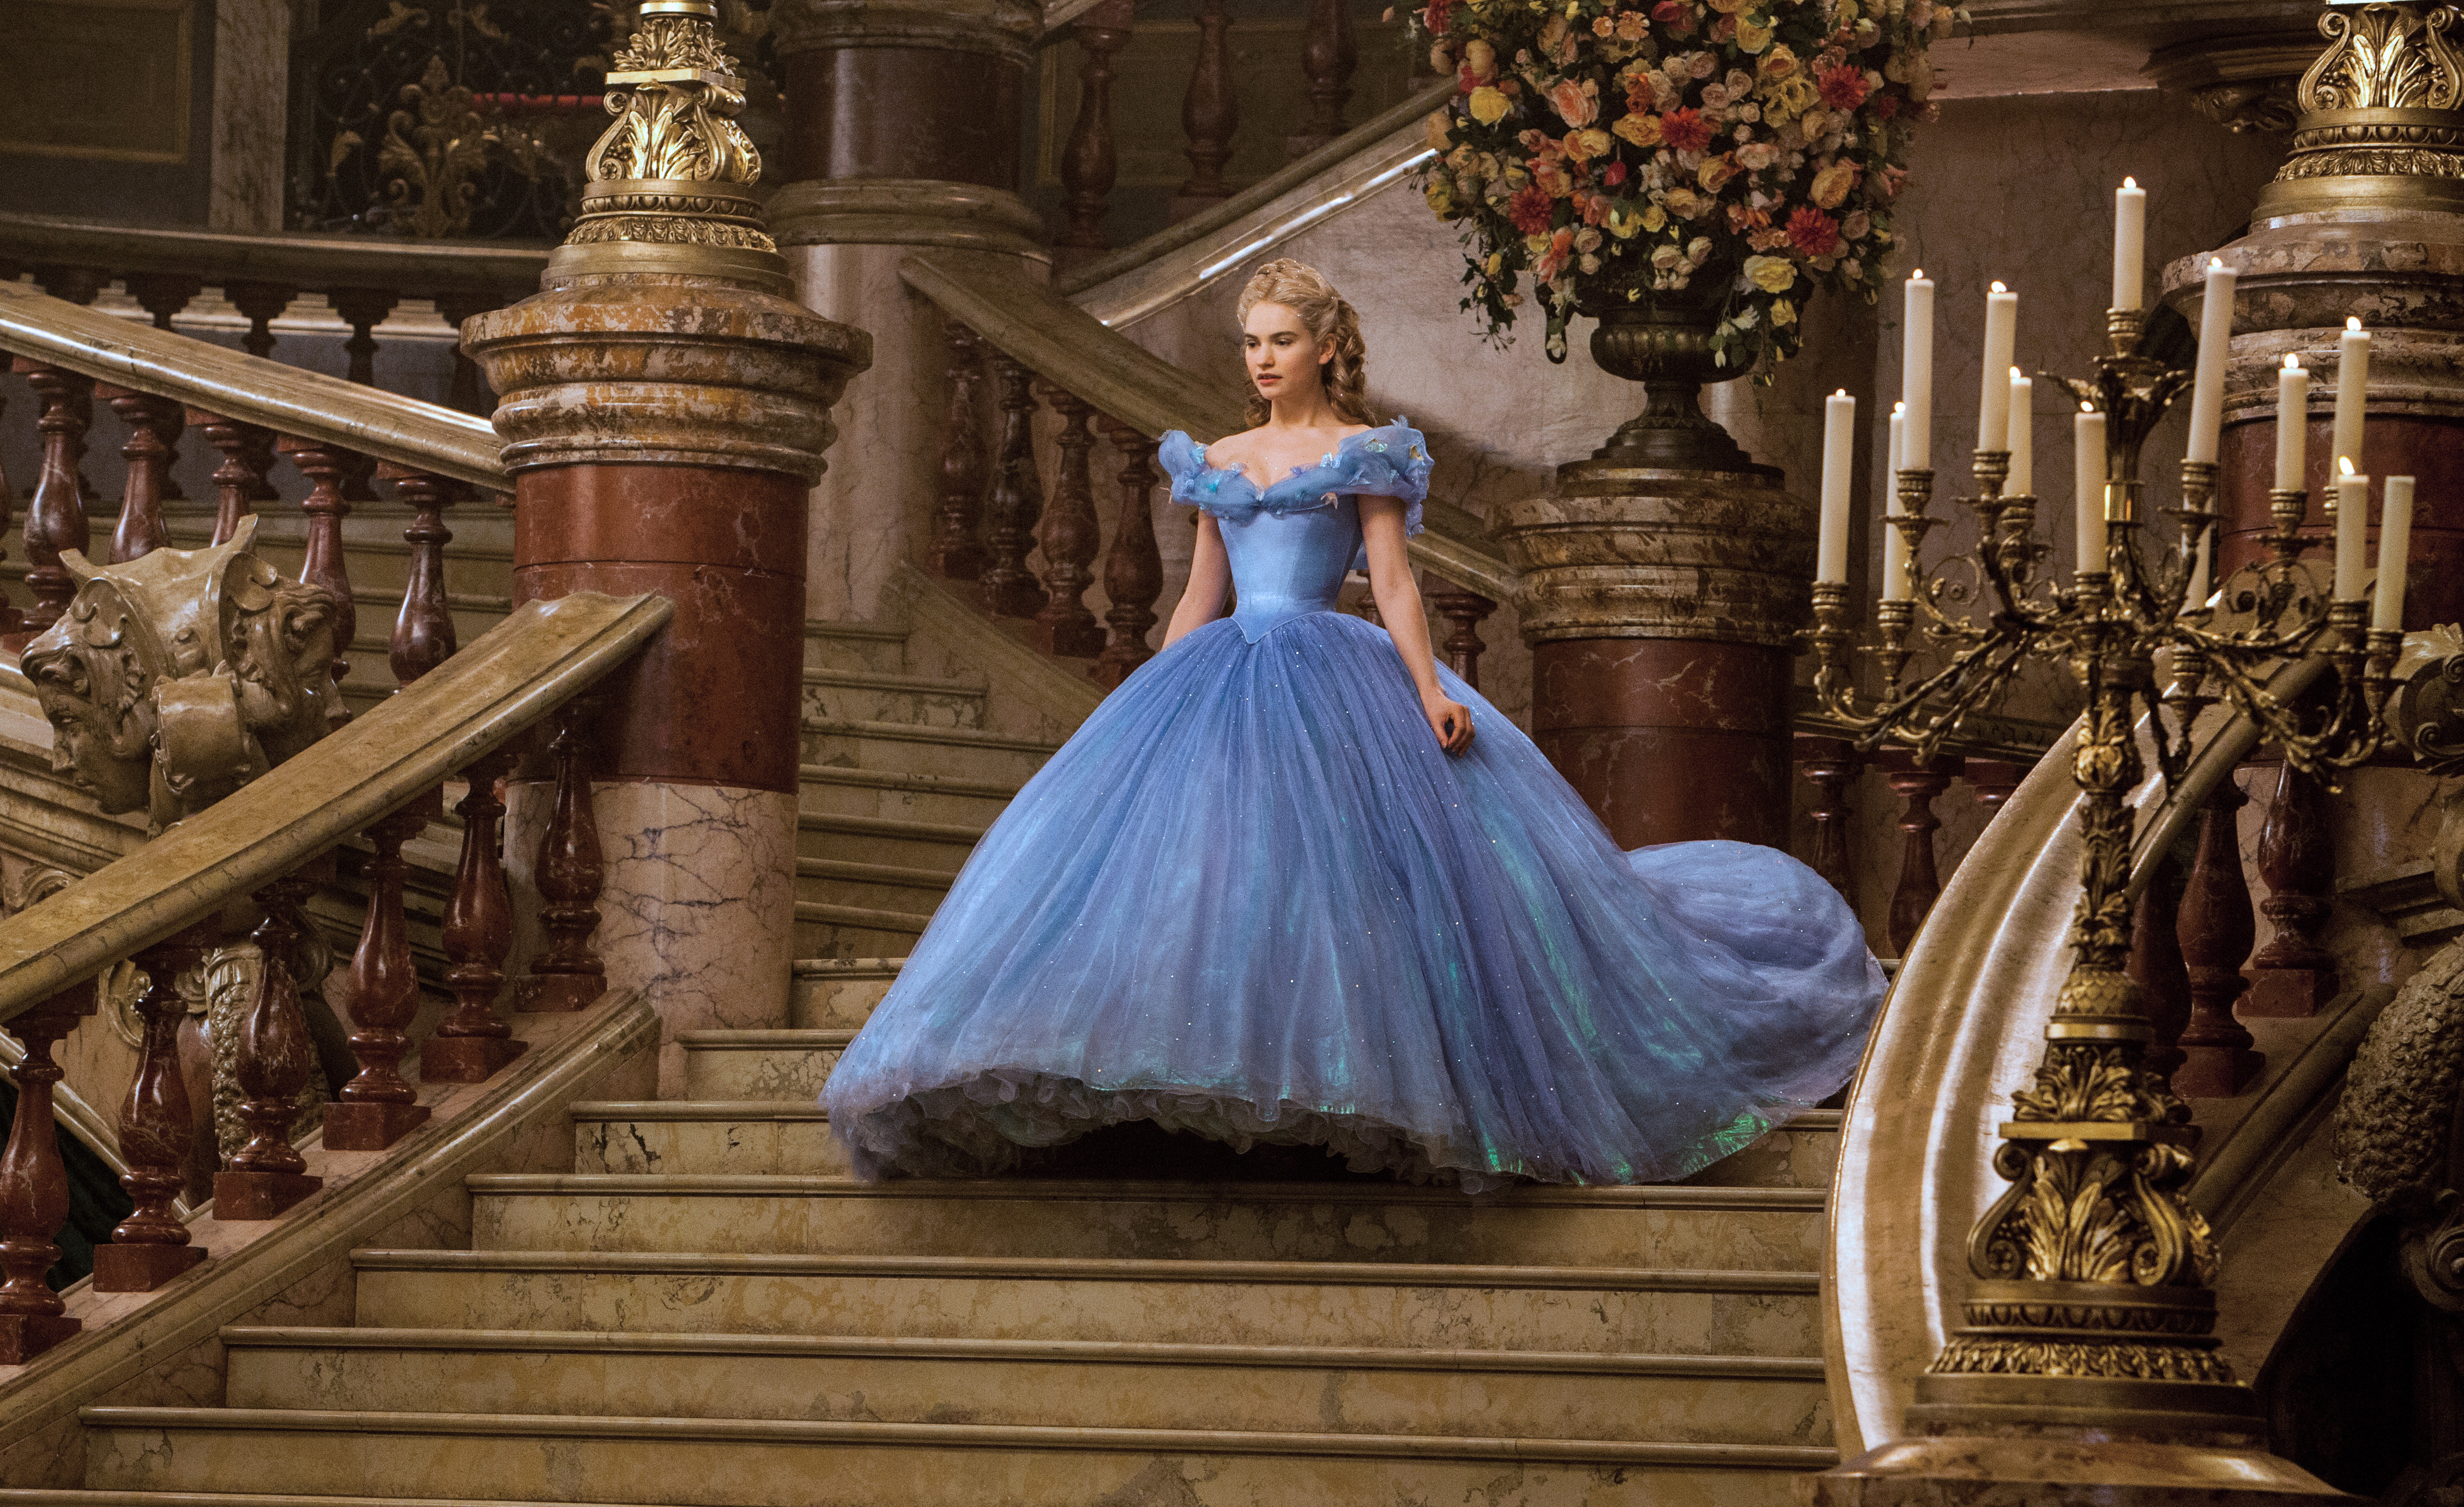 Cinderella (Lily James) enters the ball in Cinderella. (Photo: Disney)